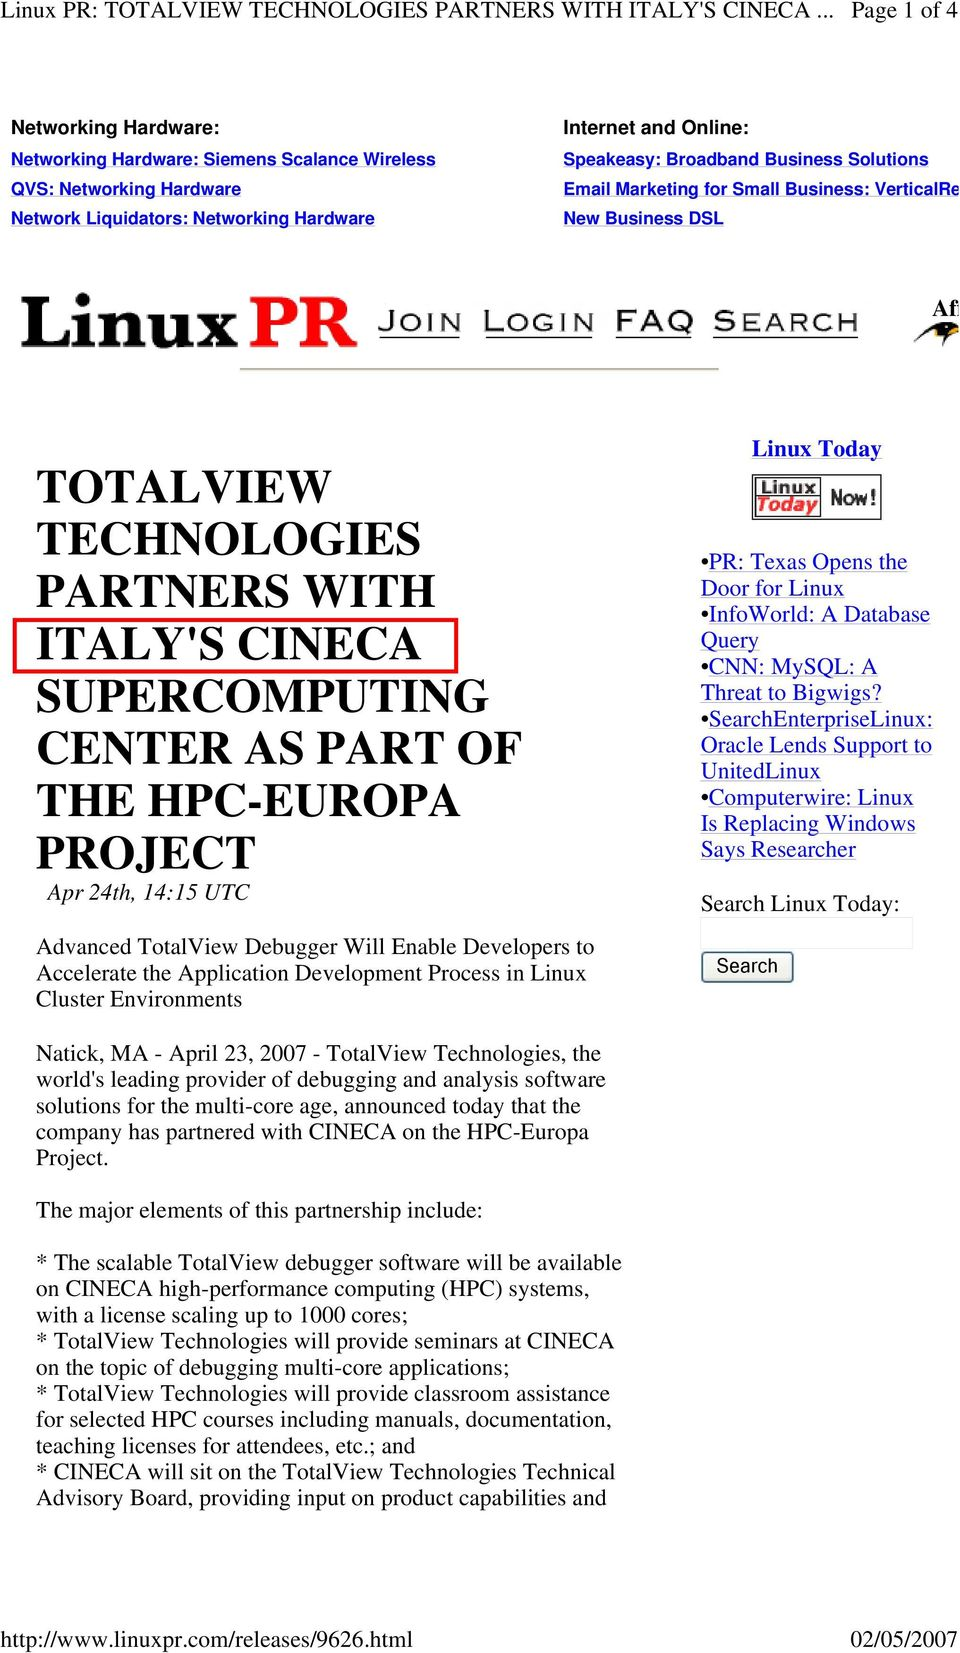 Broadband Business Solutions Email Marketing for Small Business: VerticalRe New Business DSL Aff TOTALVIEW TECHNOLOGIES PARTNERS WITH ITALY'S CINECA SUPERCOMPUTING CENTER AS PART OF THE HPC-EUROPA